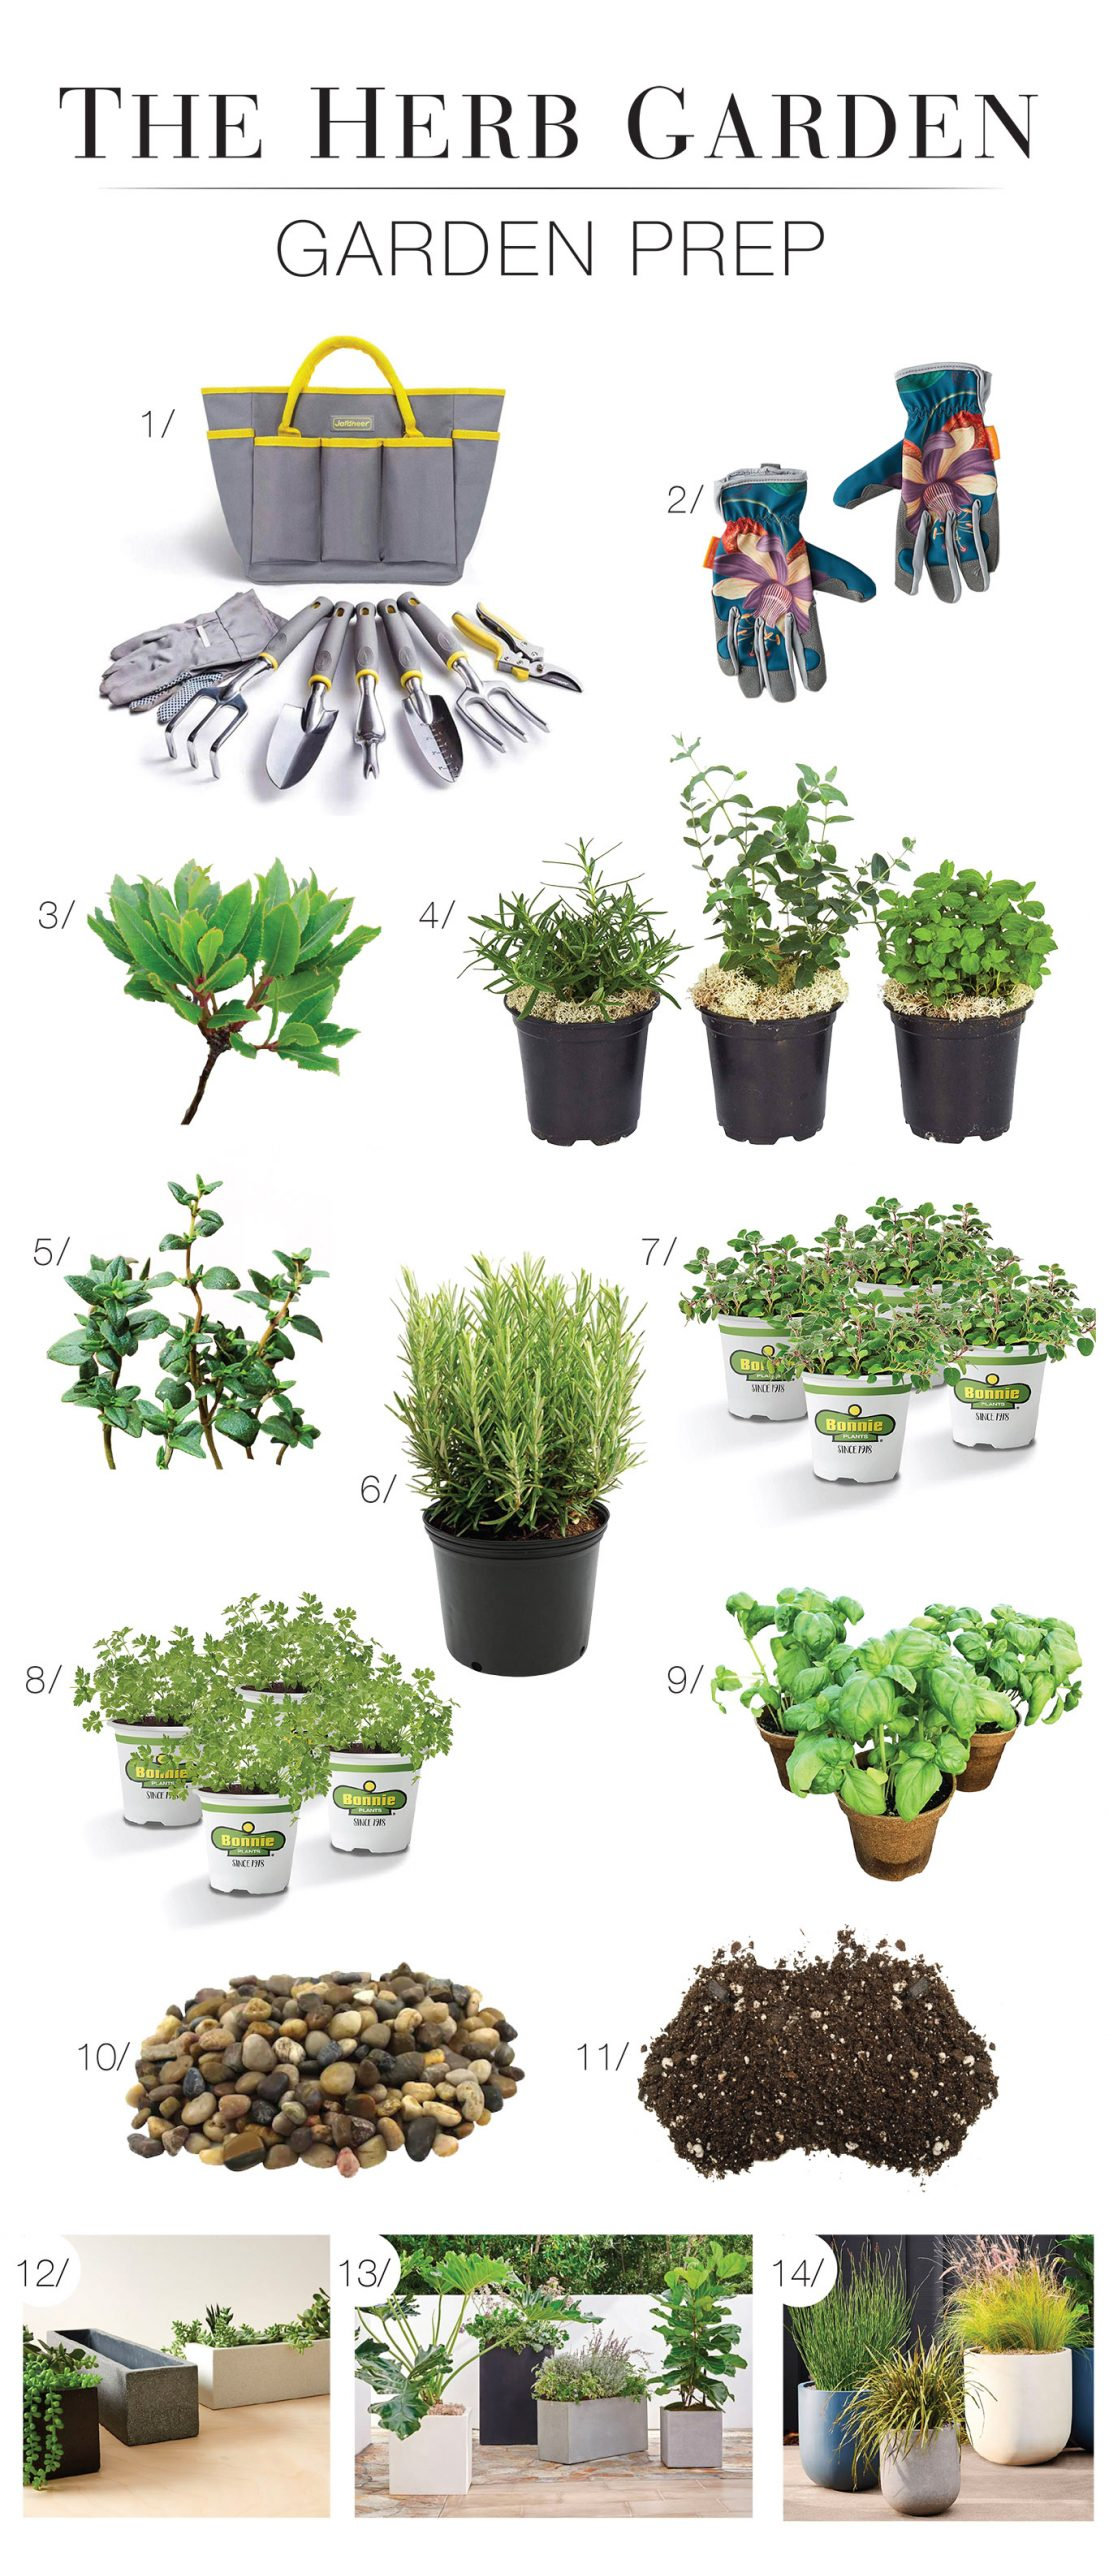 A useful, manageable at-home project: The Kitchen Herb Garden. A starter kit for culinary seeds (rosemary, thyme) indoors, outdoors, on a balcony. Shop it here.